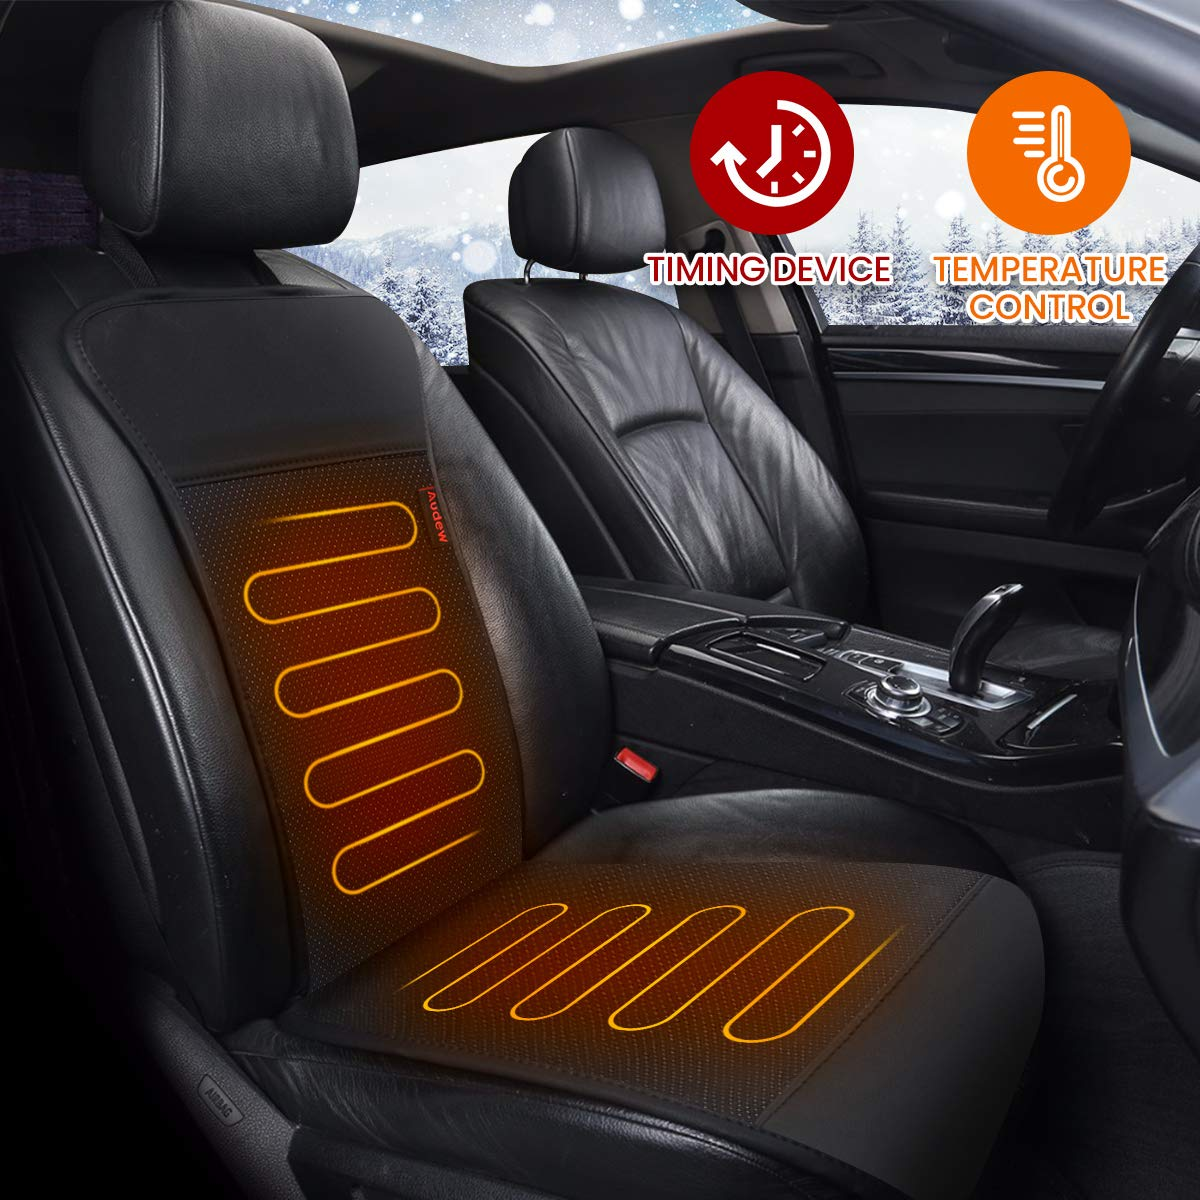 Audew Car Heated Seat Cushion 12 V Car Heated Cover with Intelligent Temperature Controller Car Seat Warmer Car Heated Pads Black